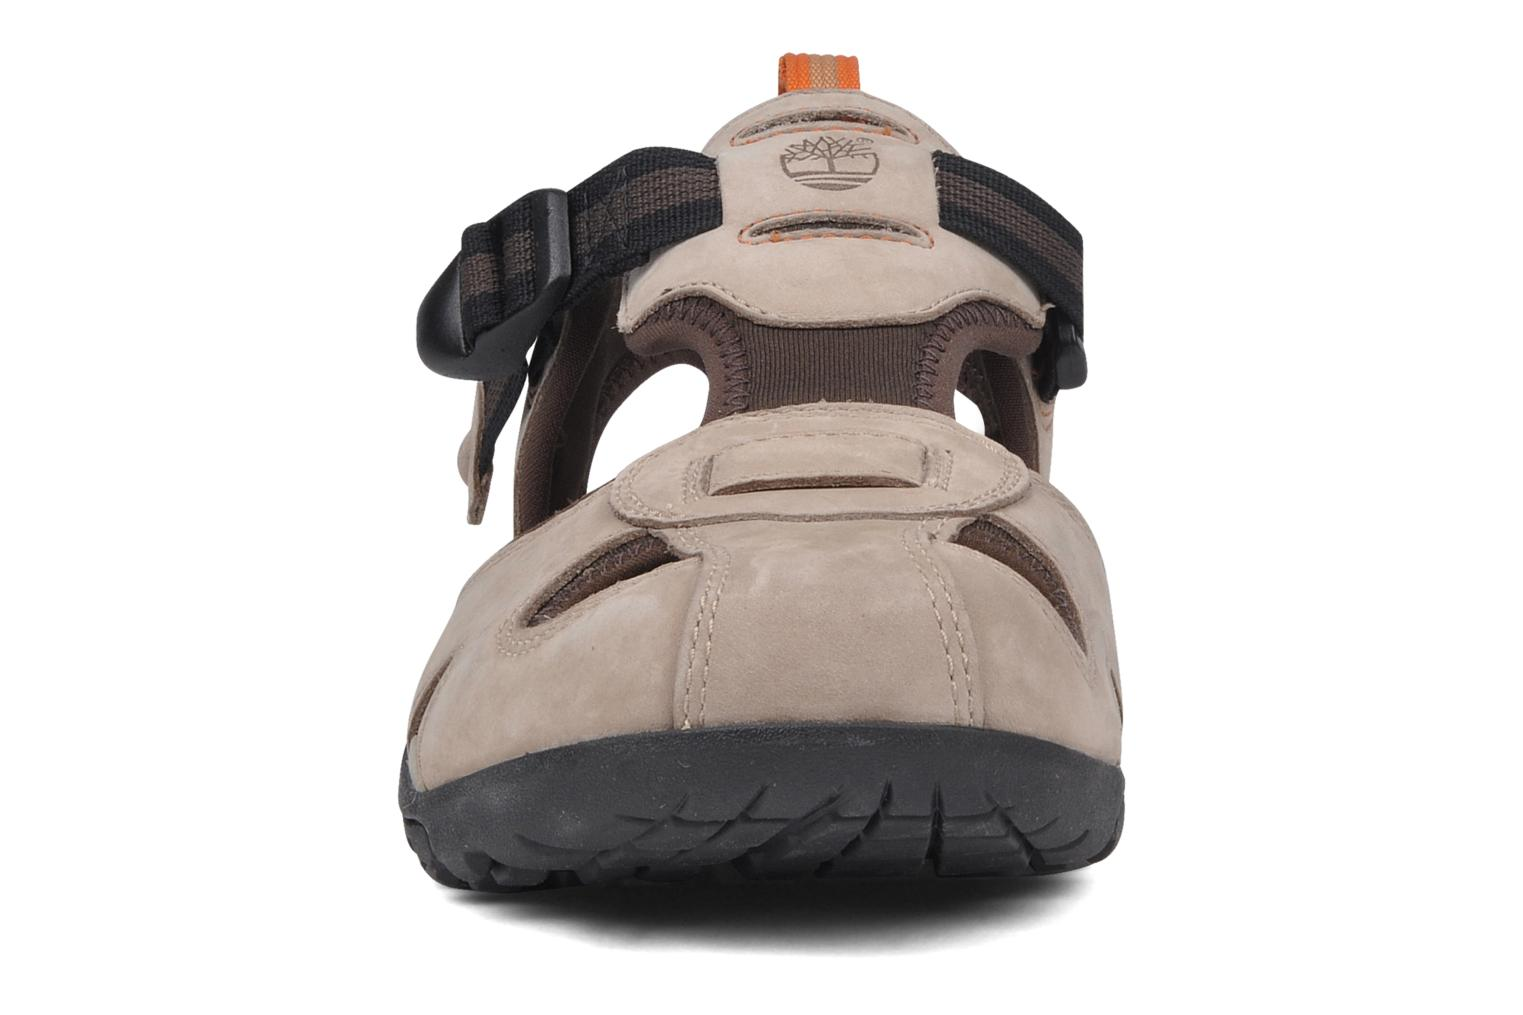 Timberland Earthkeepers Les Sandales Des Hommes De L'avant-pays 97OJ7nChq